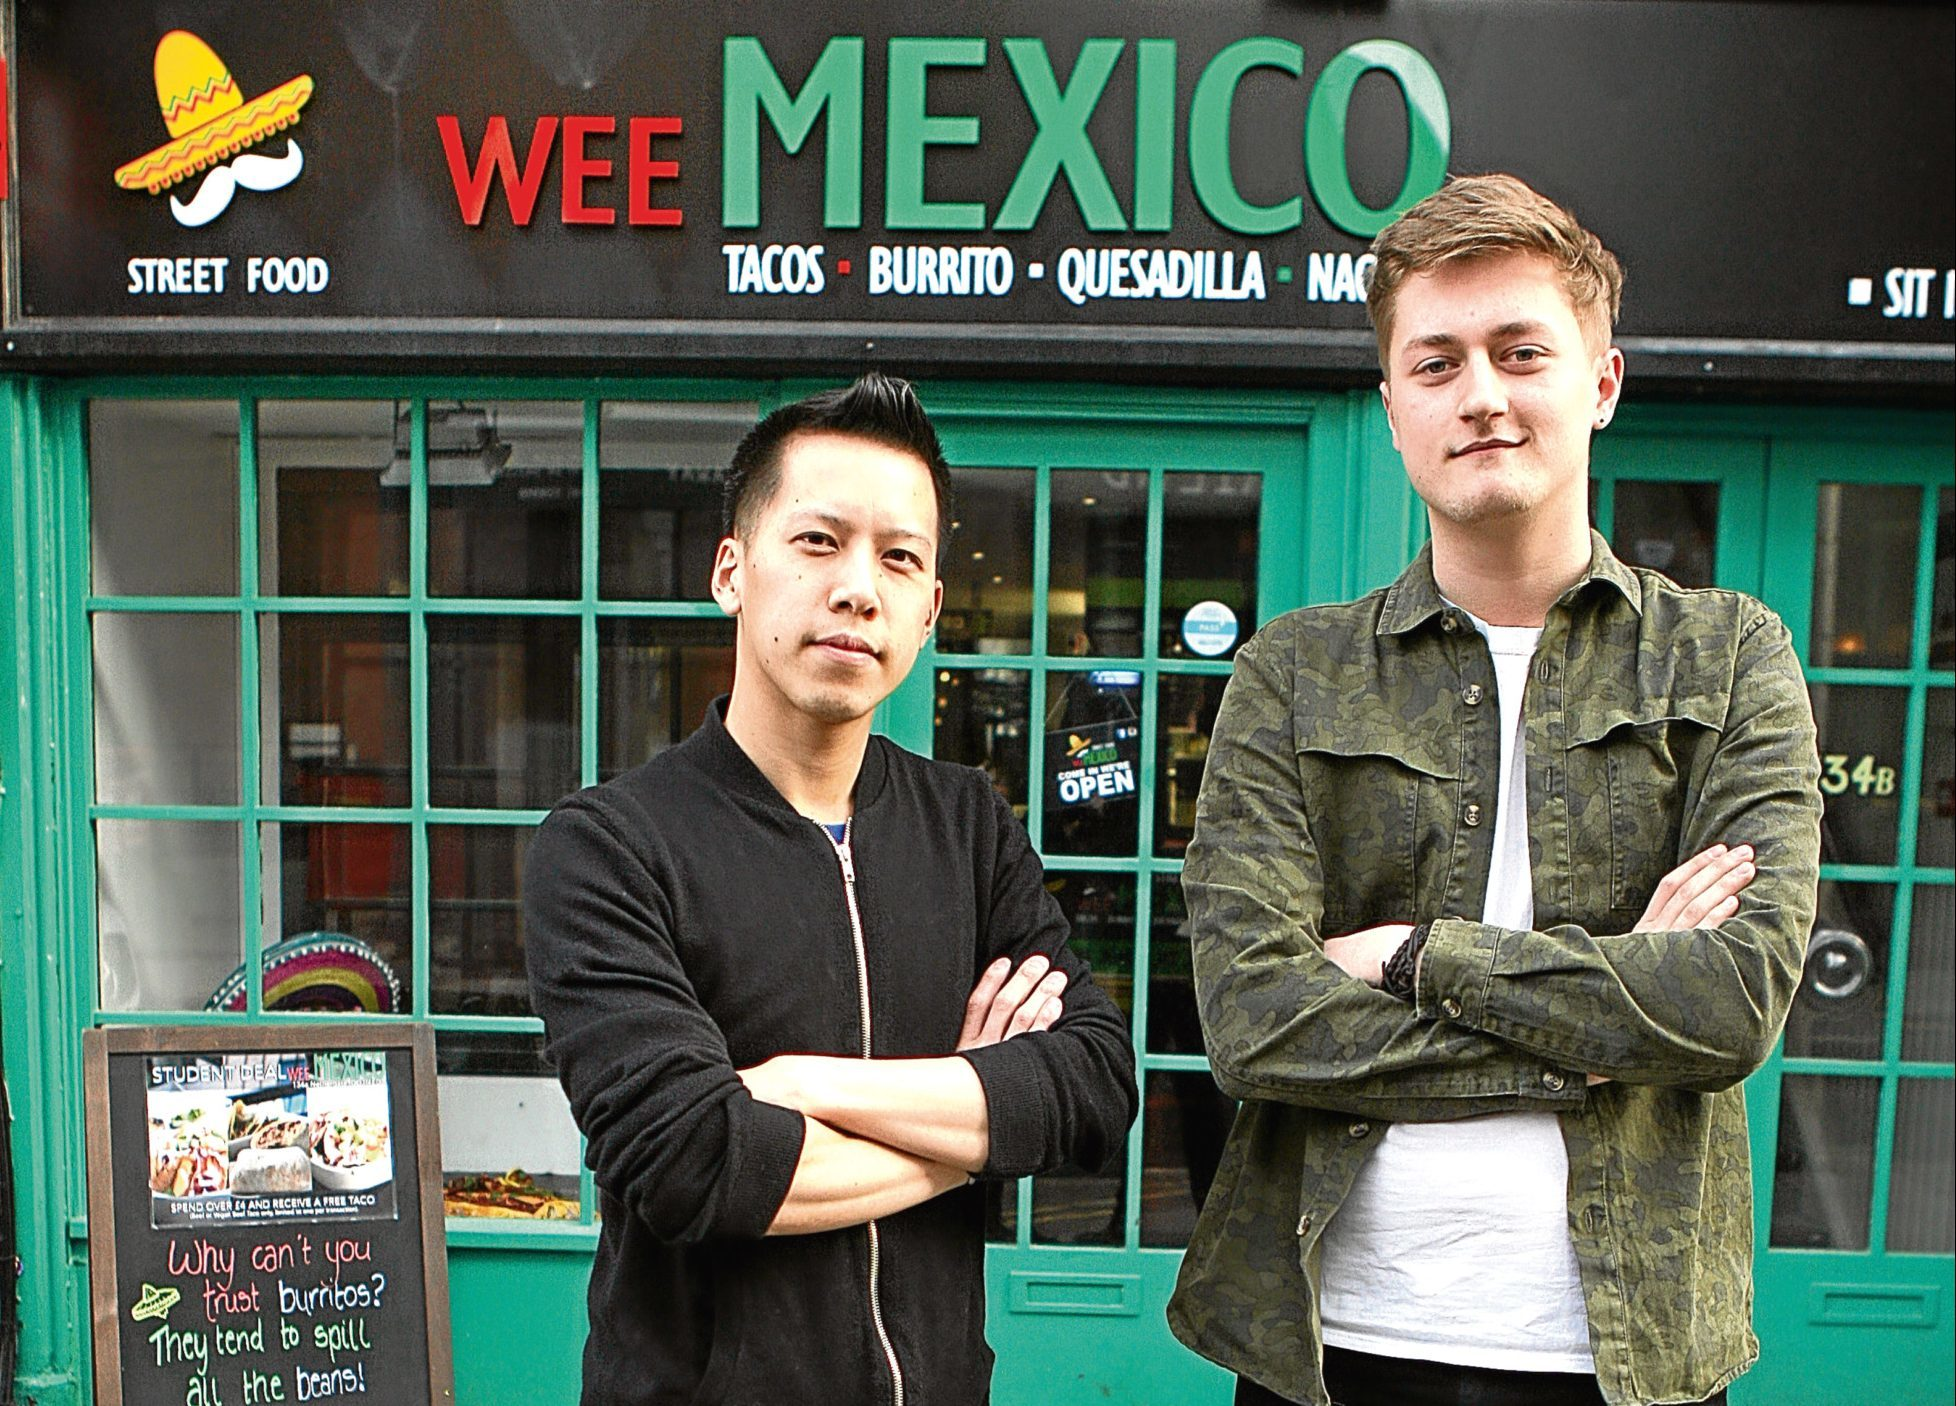 James Fung and Ben Wyatt, co owners of Wee Mexico